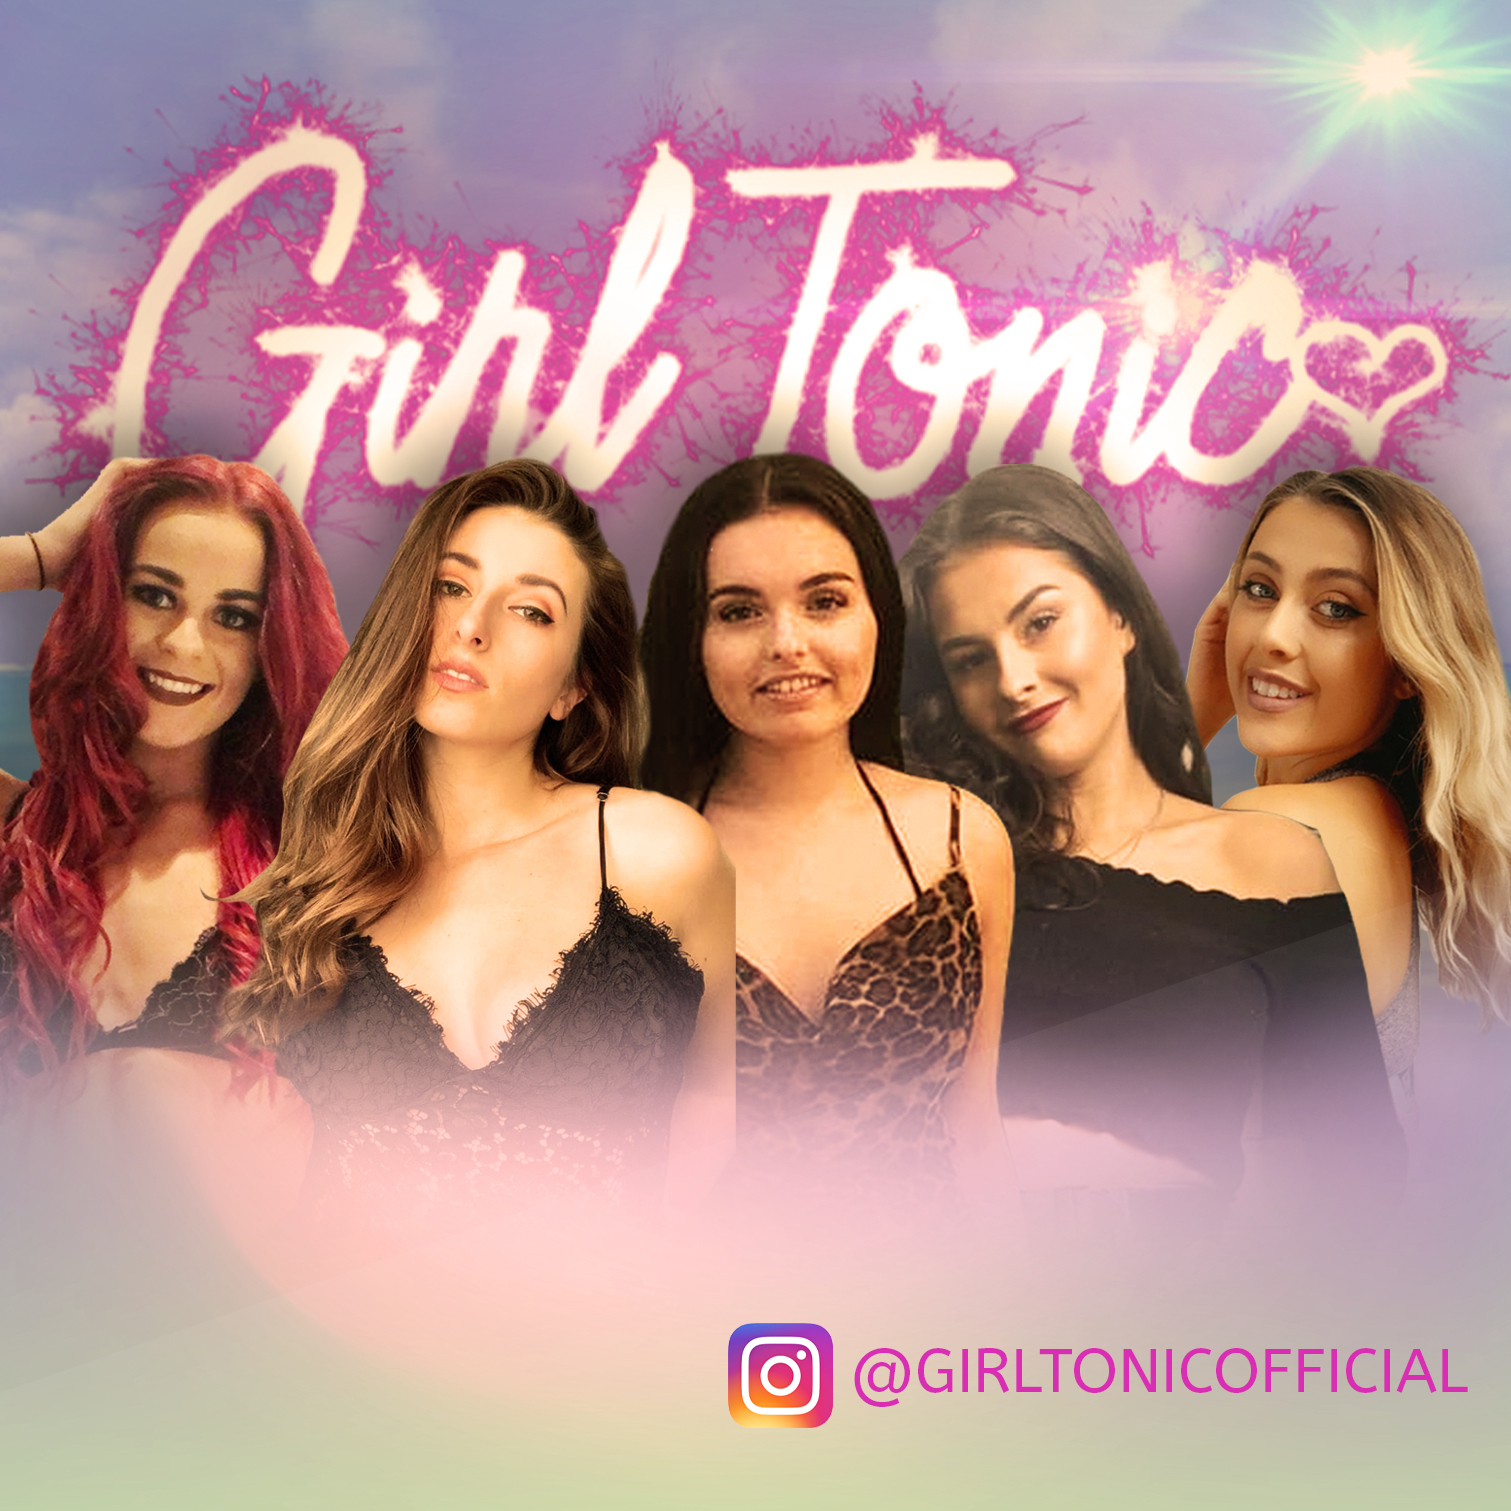 Widnes girl Britani Humphries selected for Girl Tonic group | Runcorn and Widnes World